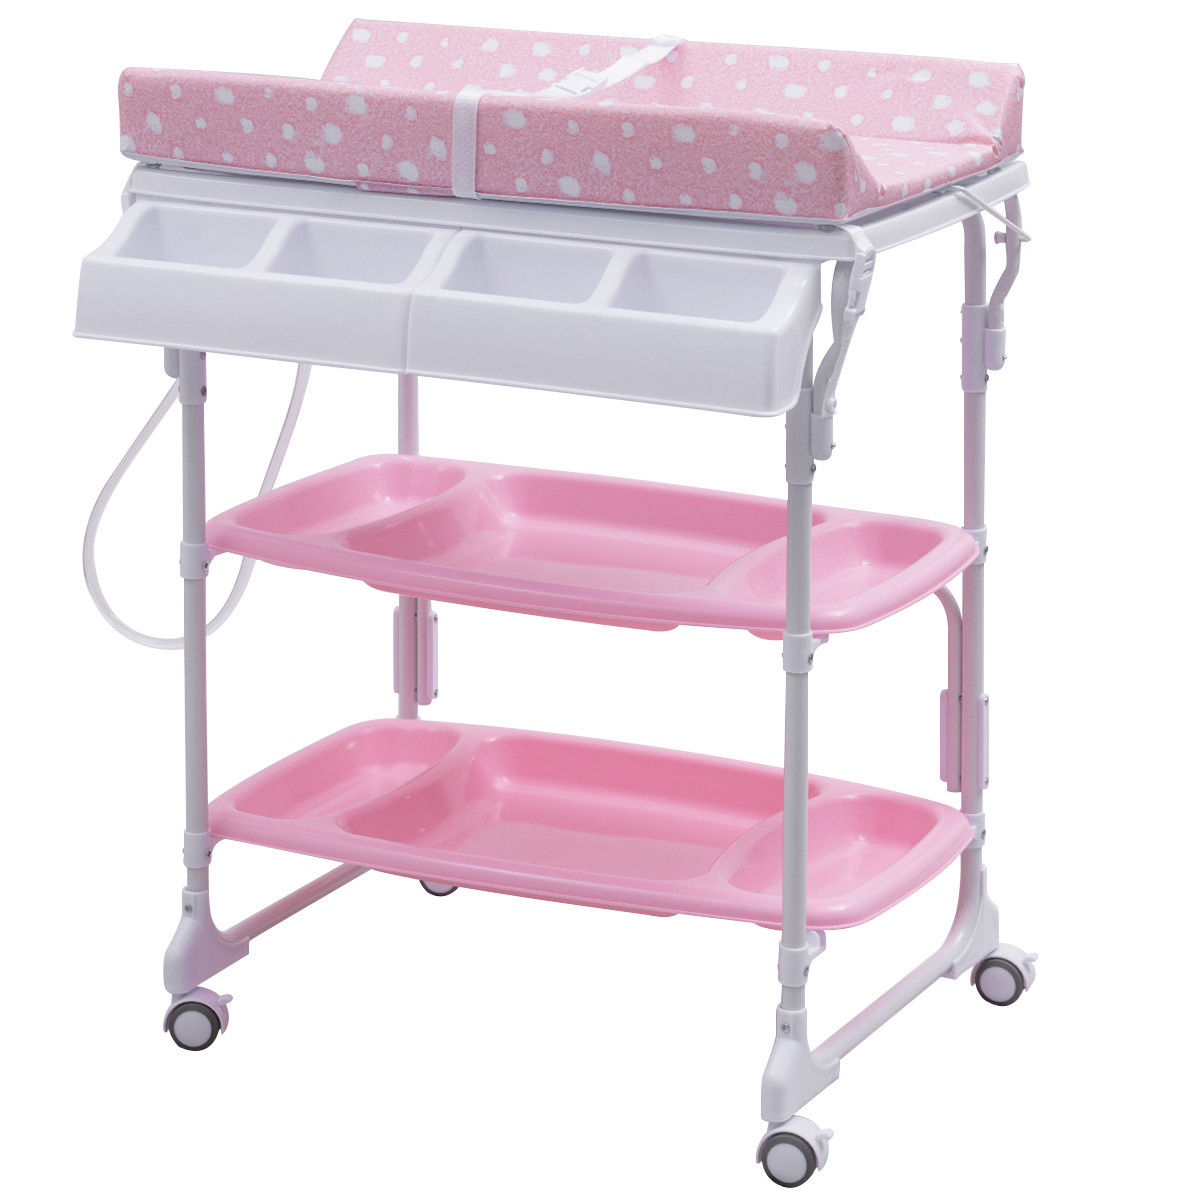 Costway Baby Infant Changing Table Diaper Station Organizer Storage w/ Tube - image 1 de 10